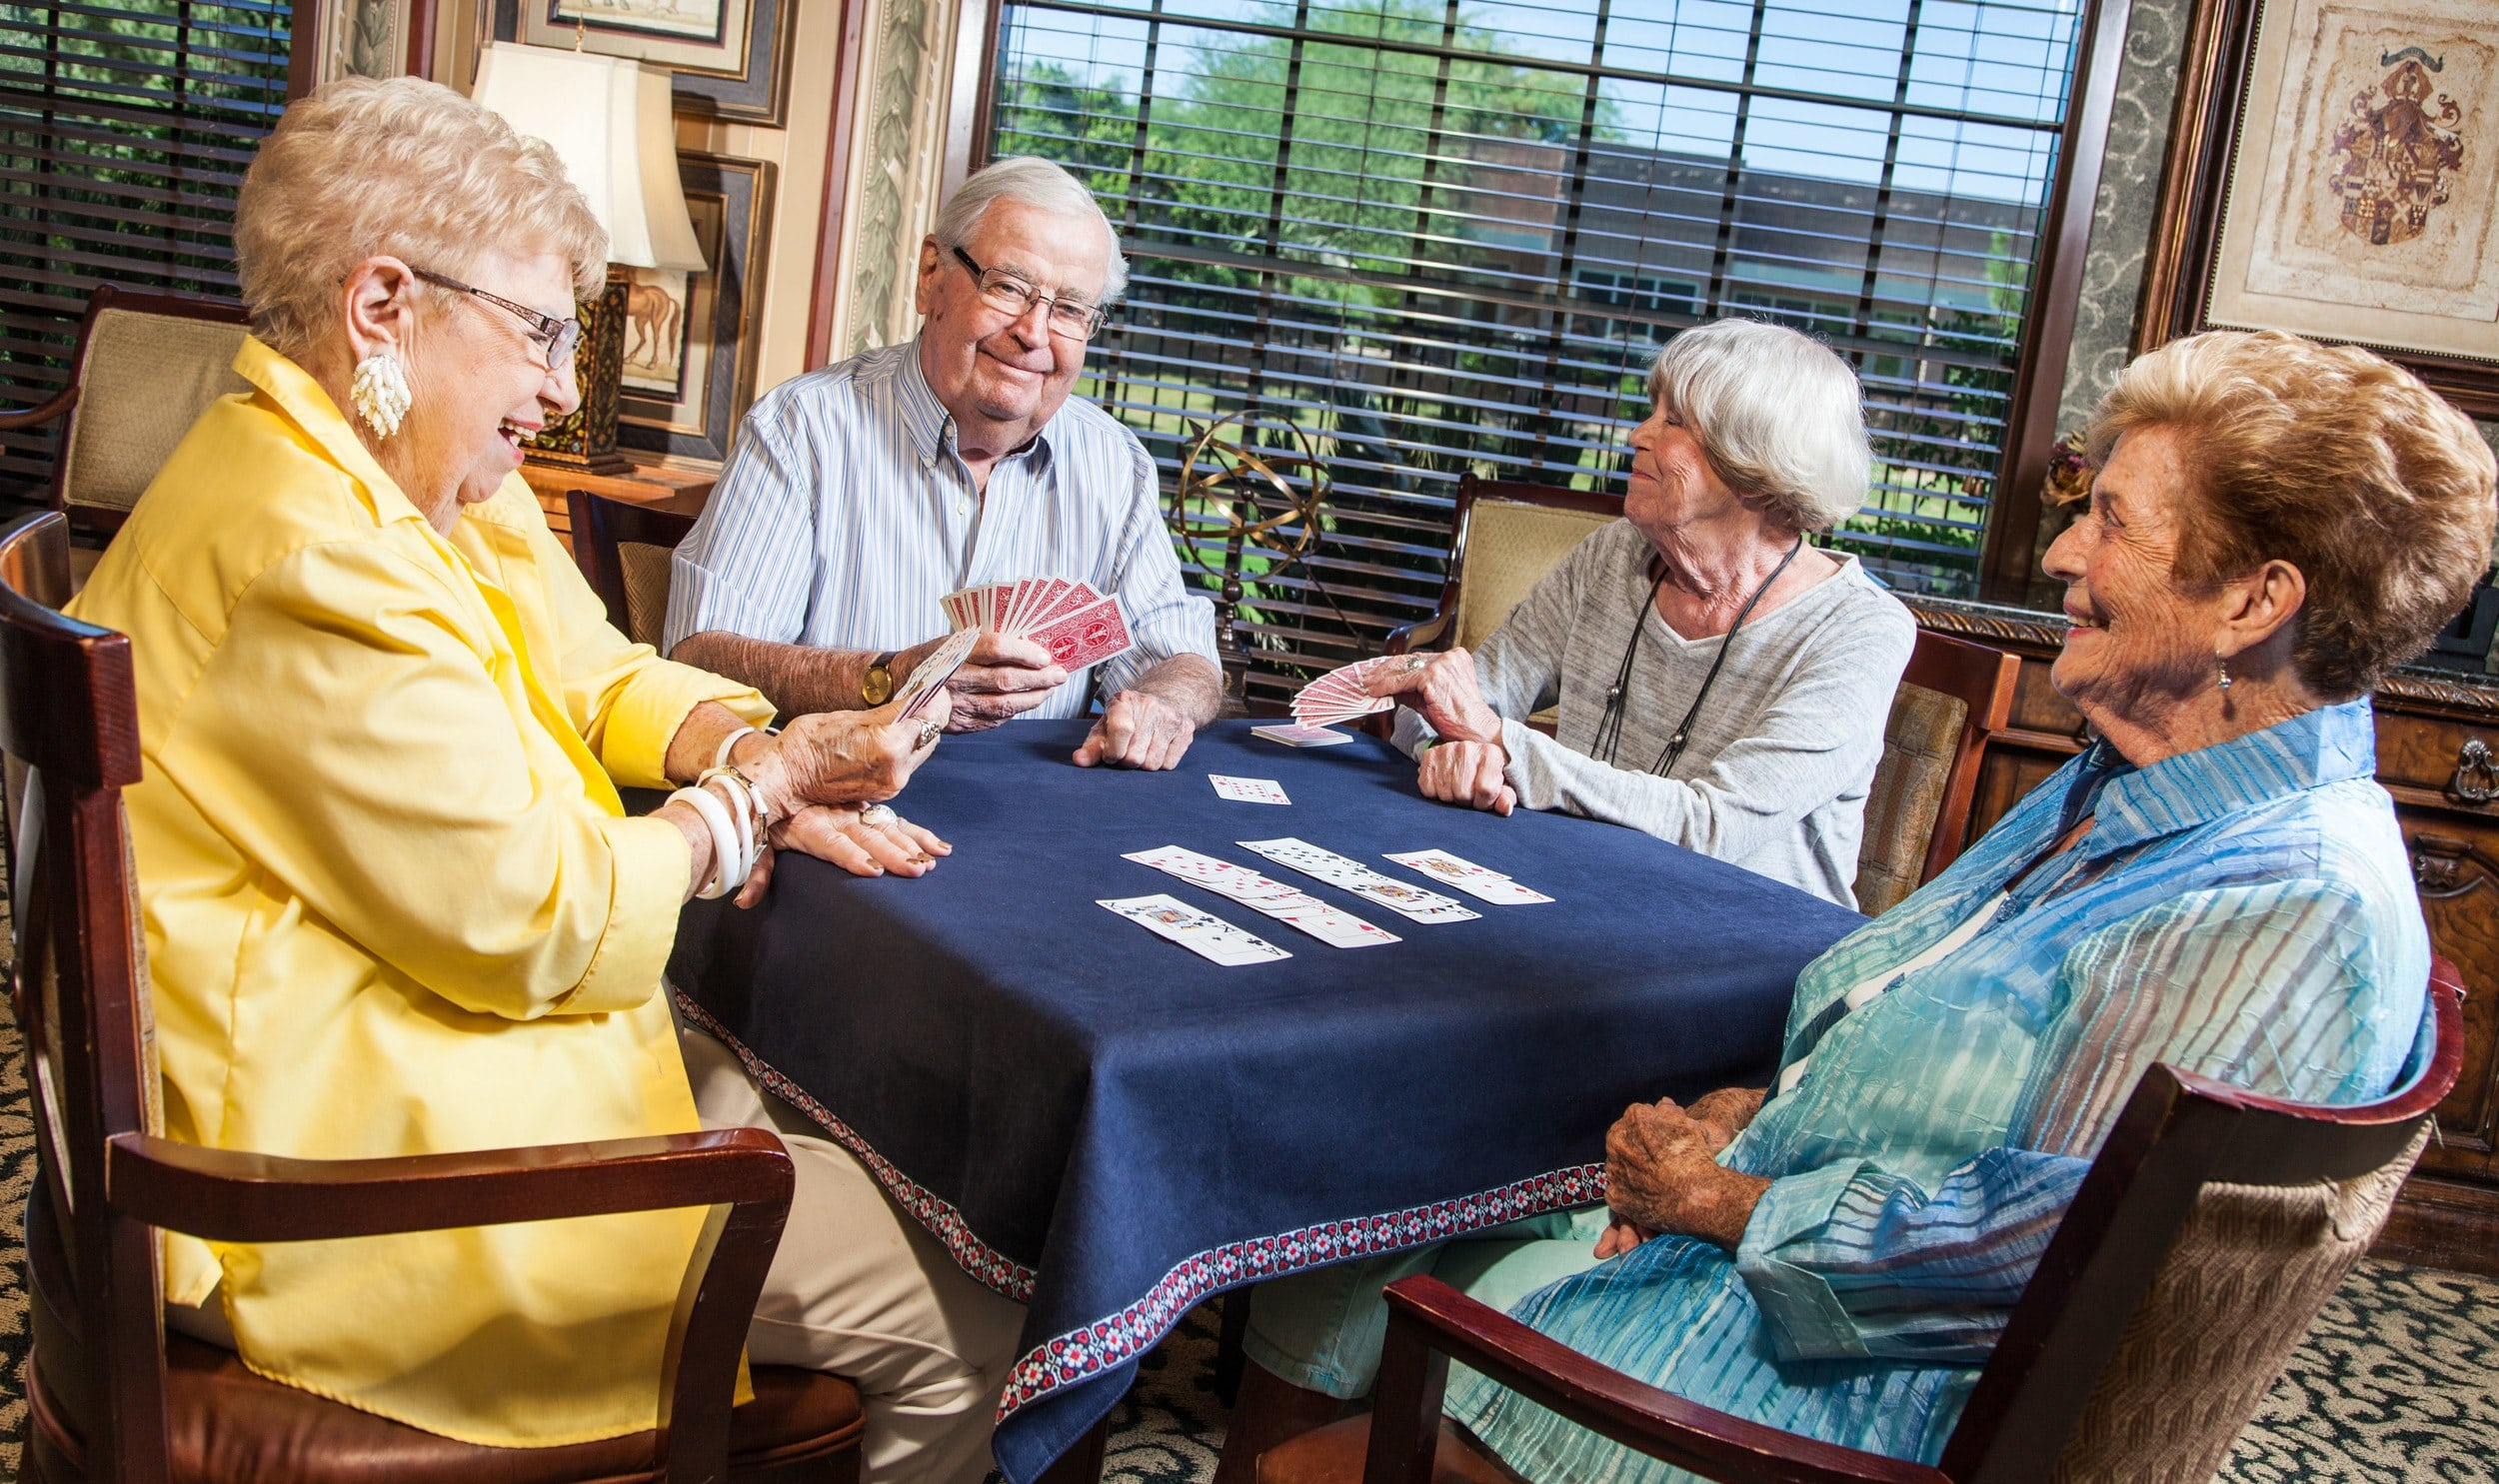 Residents playing cards together at Tuscany at McCormick Ranch senior living community in Scottsdale